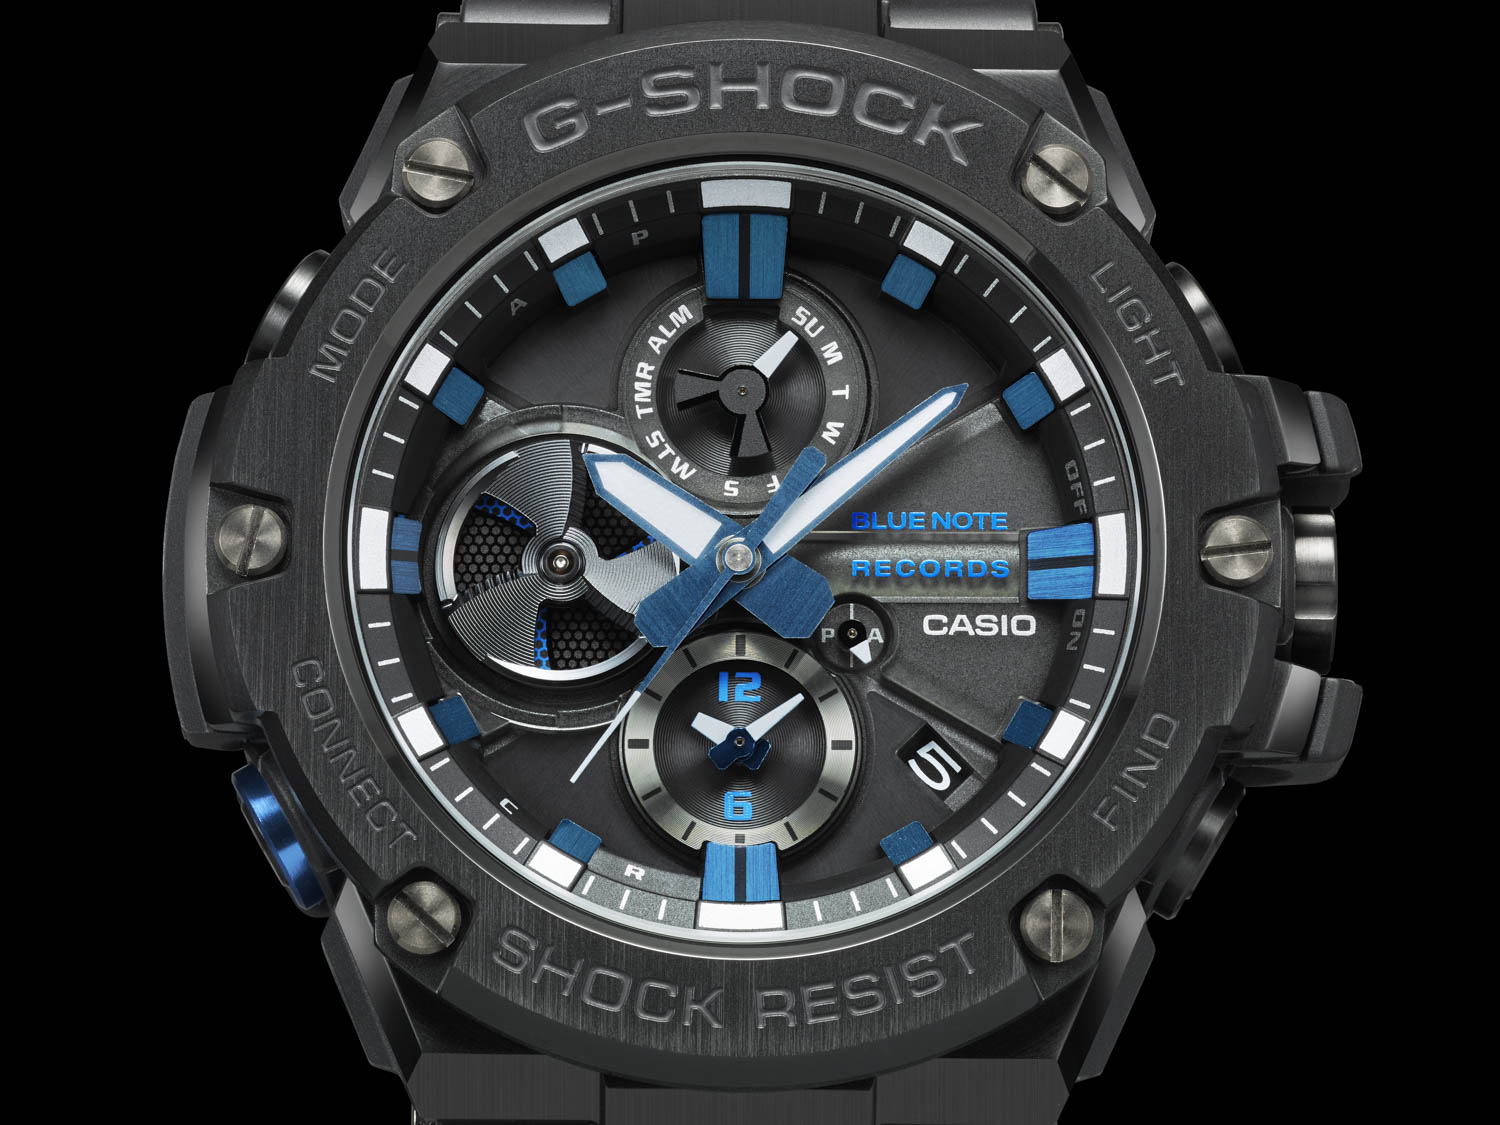 Frontal View of G-Shock X Blue Note Records